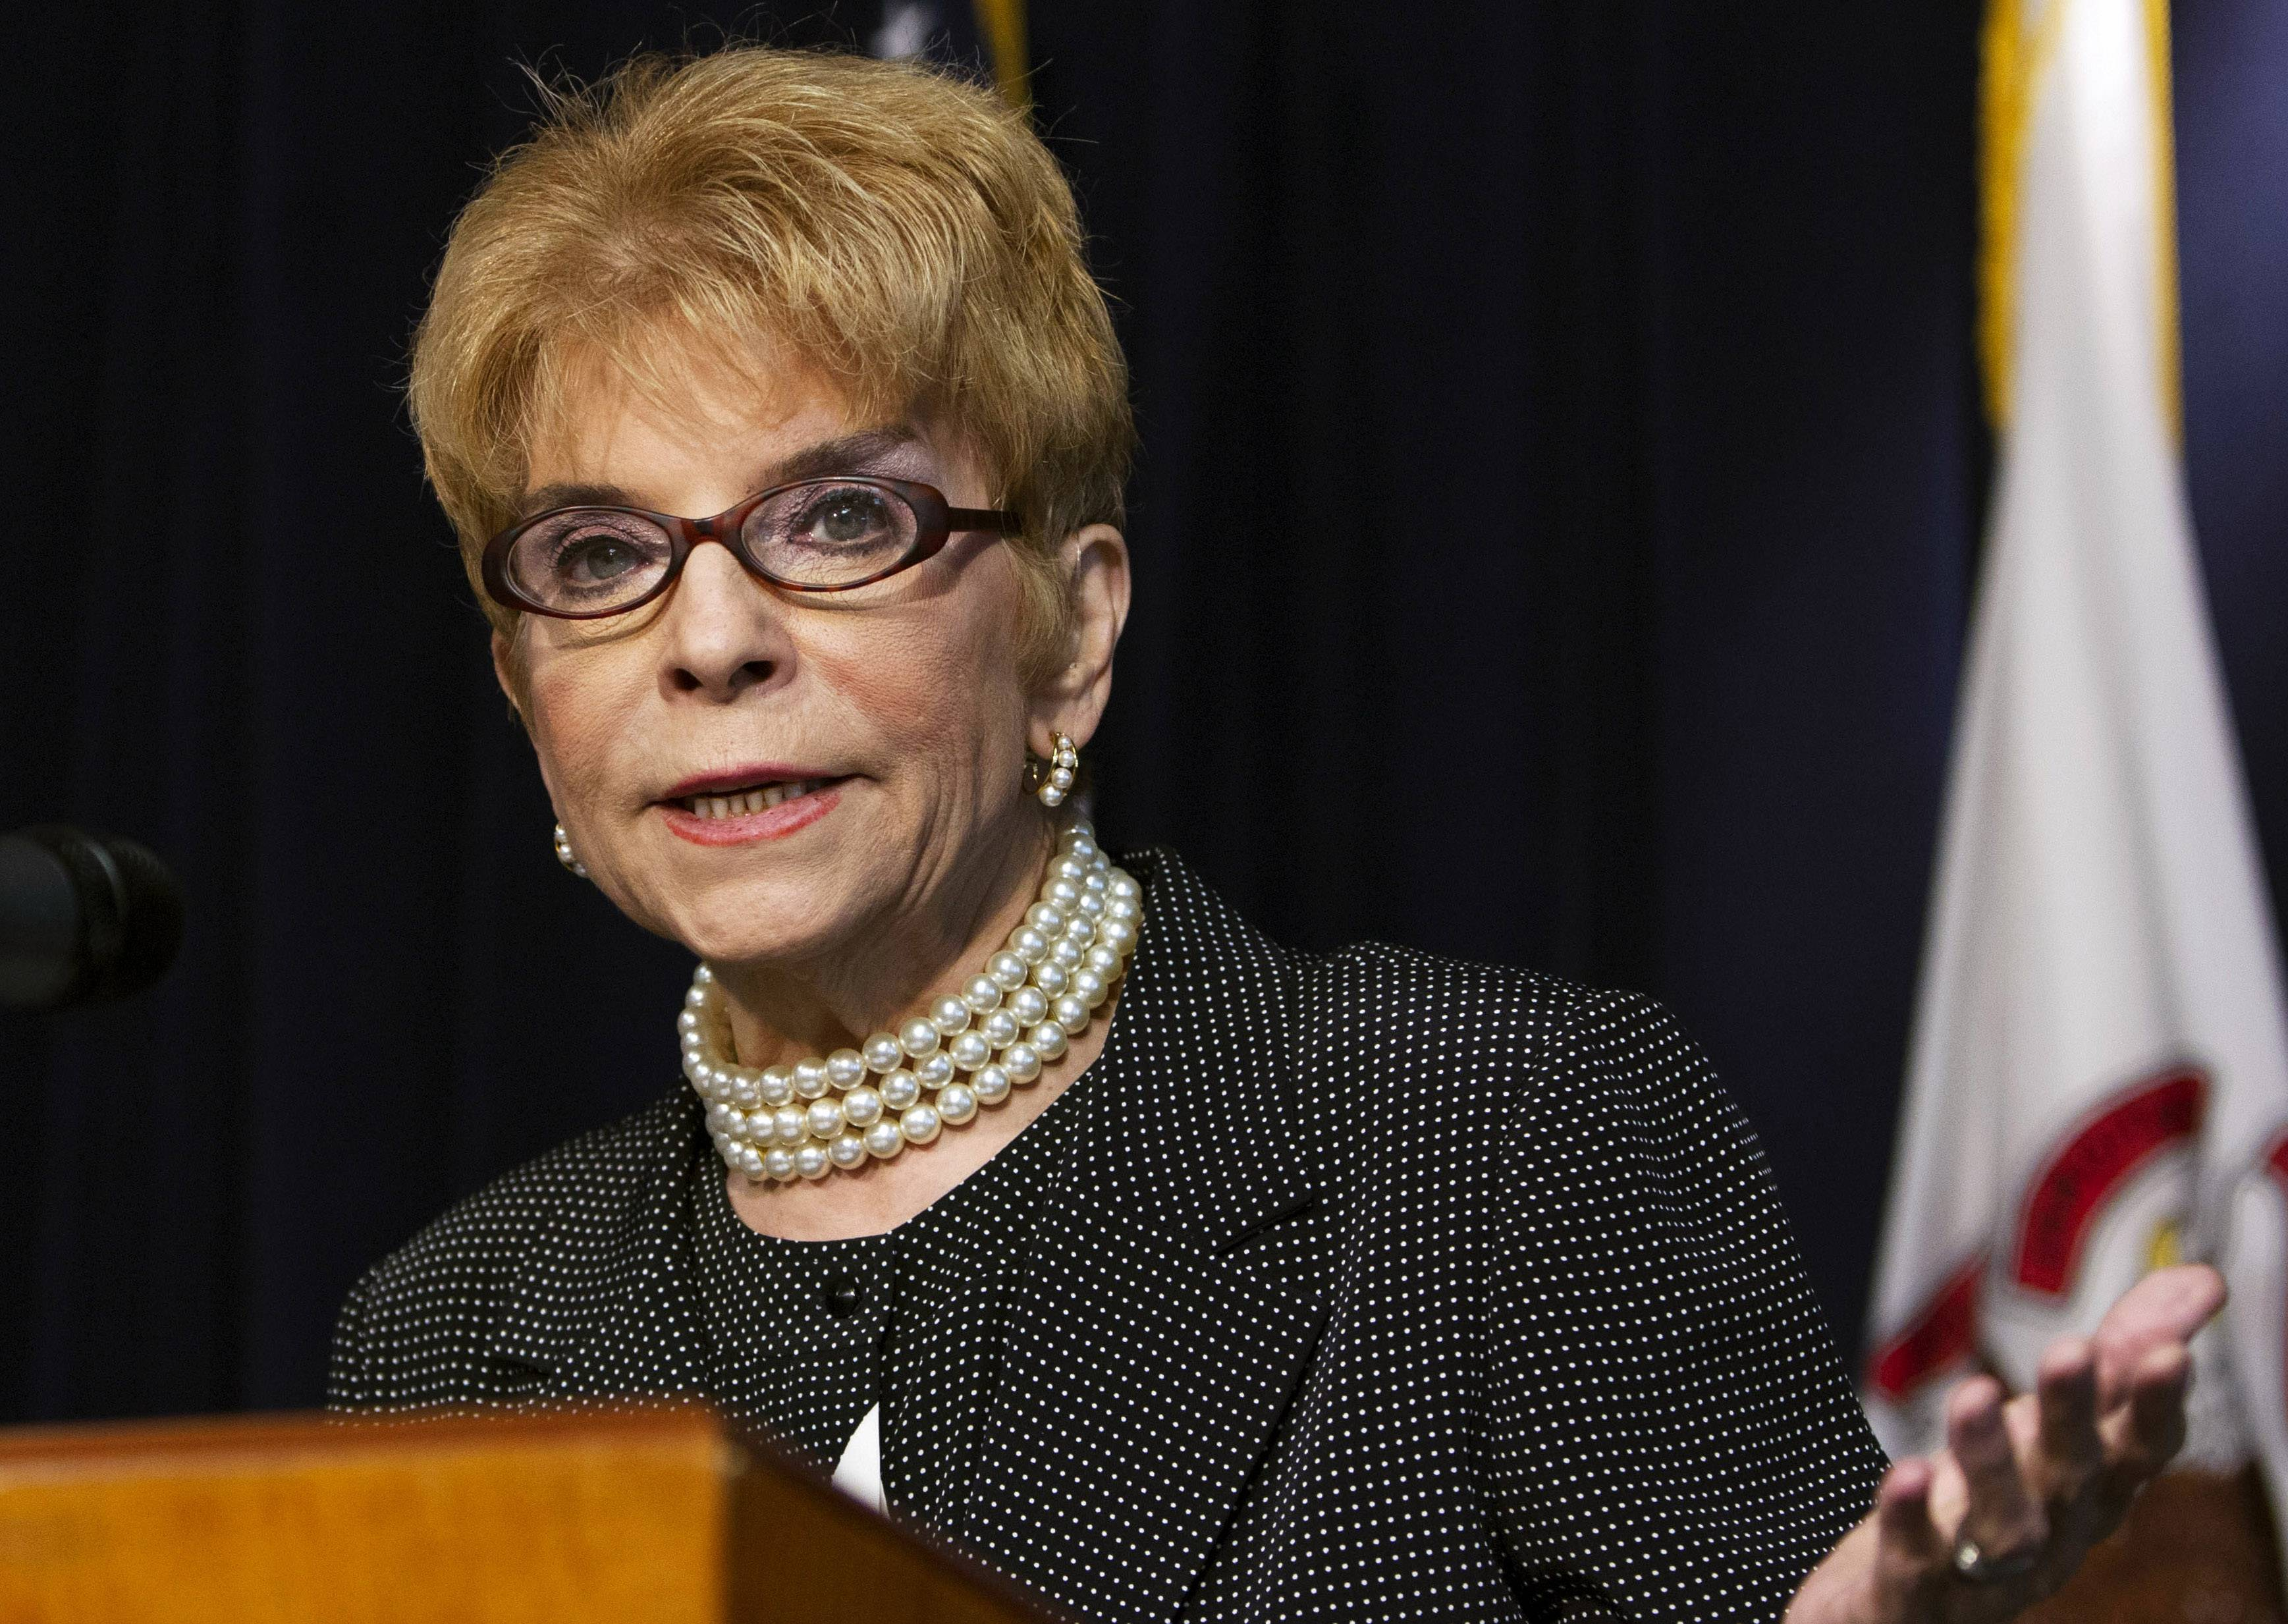 Memorial service for Topinka set for Wednesday